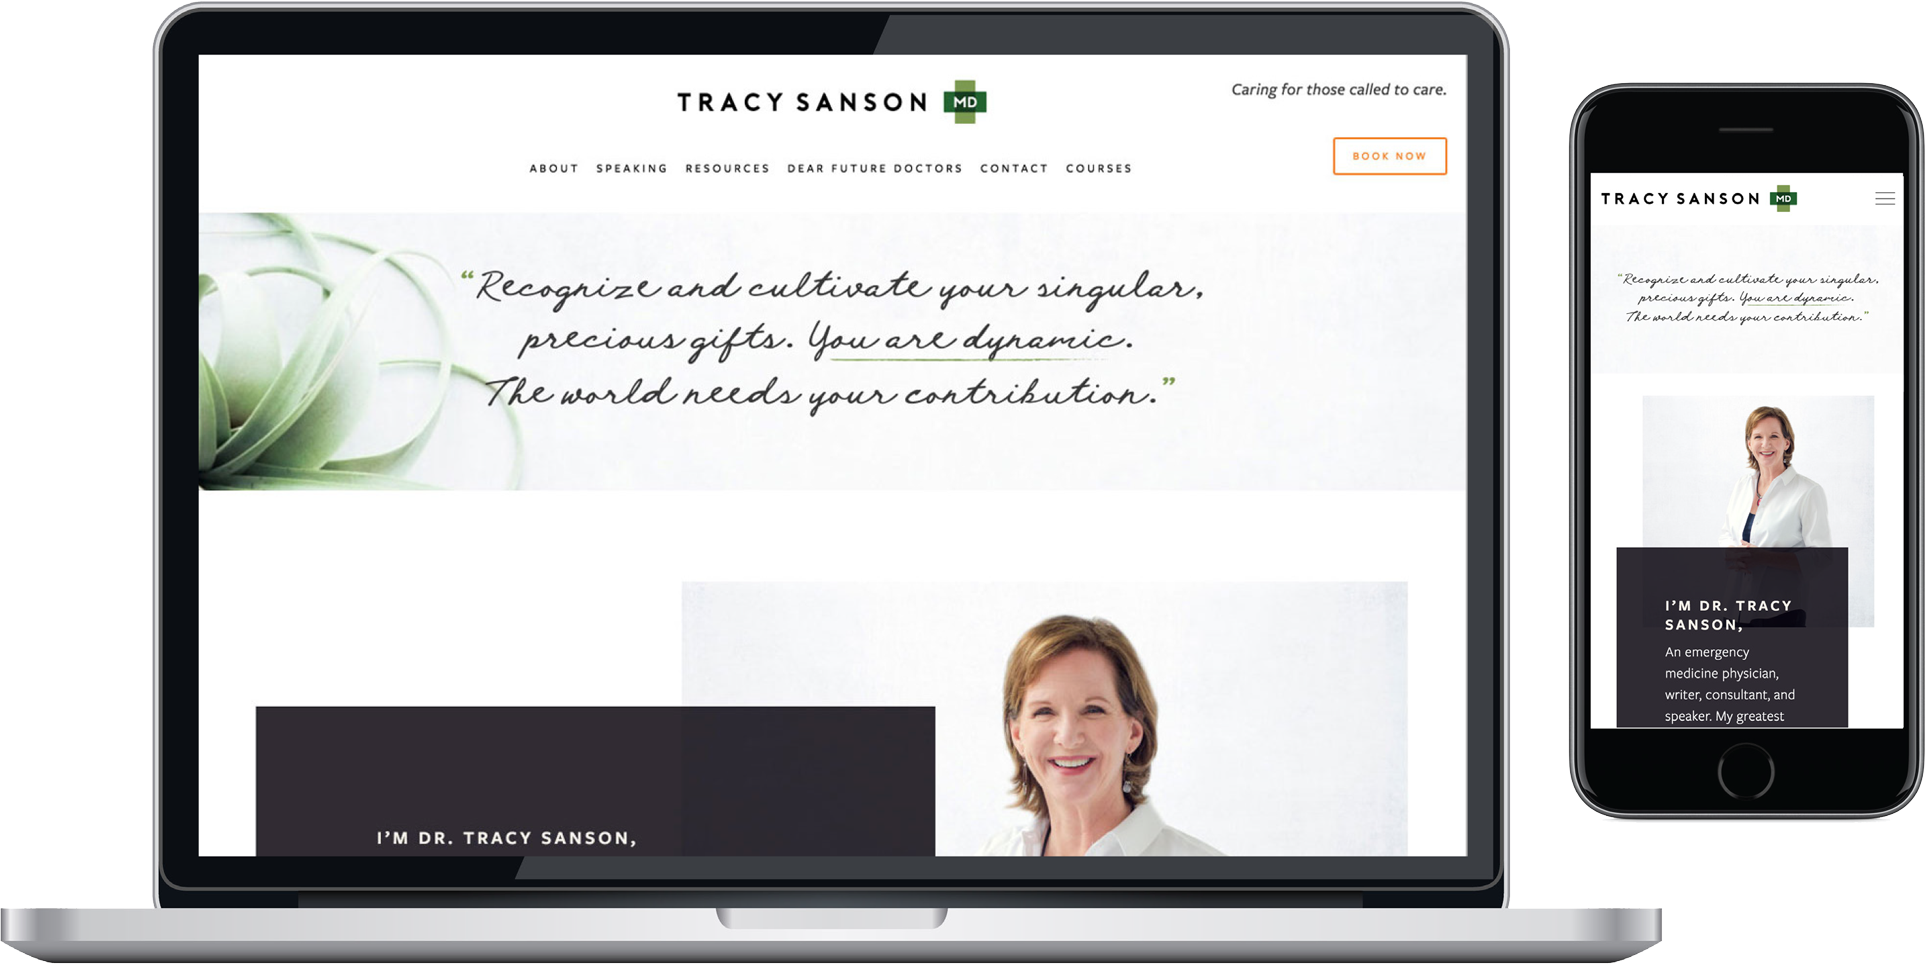 TracySansonMD - responsive squarespace website homepage